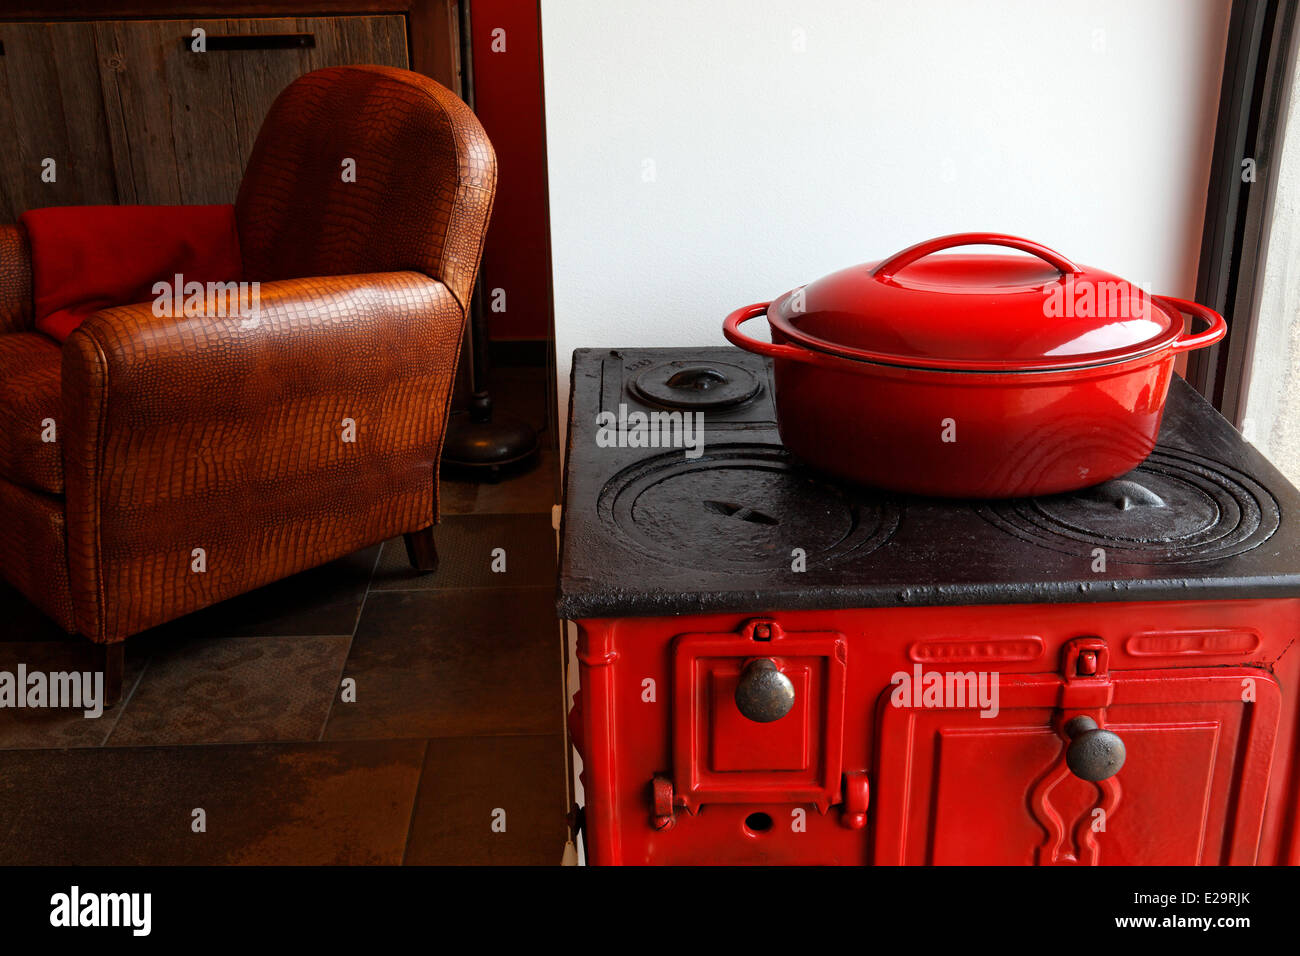 France, Morbihan, Baden, Le Val de Brangon, guest house top of the range, old stove and leather easy chair - Stock Image